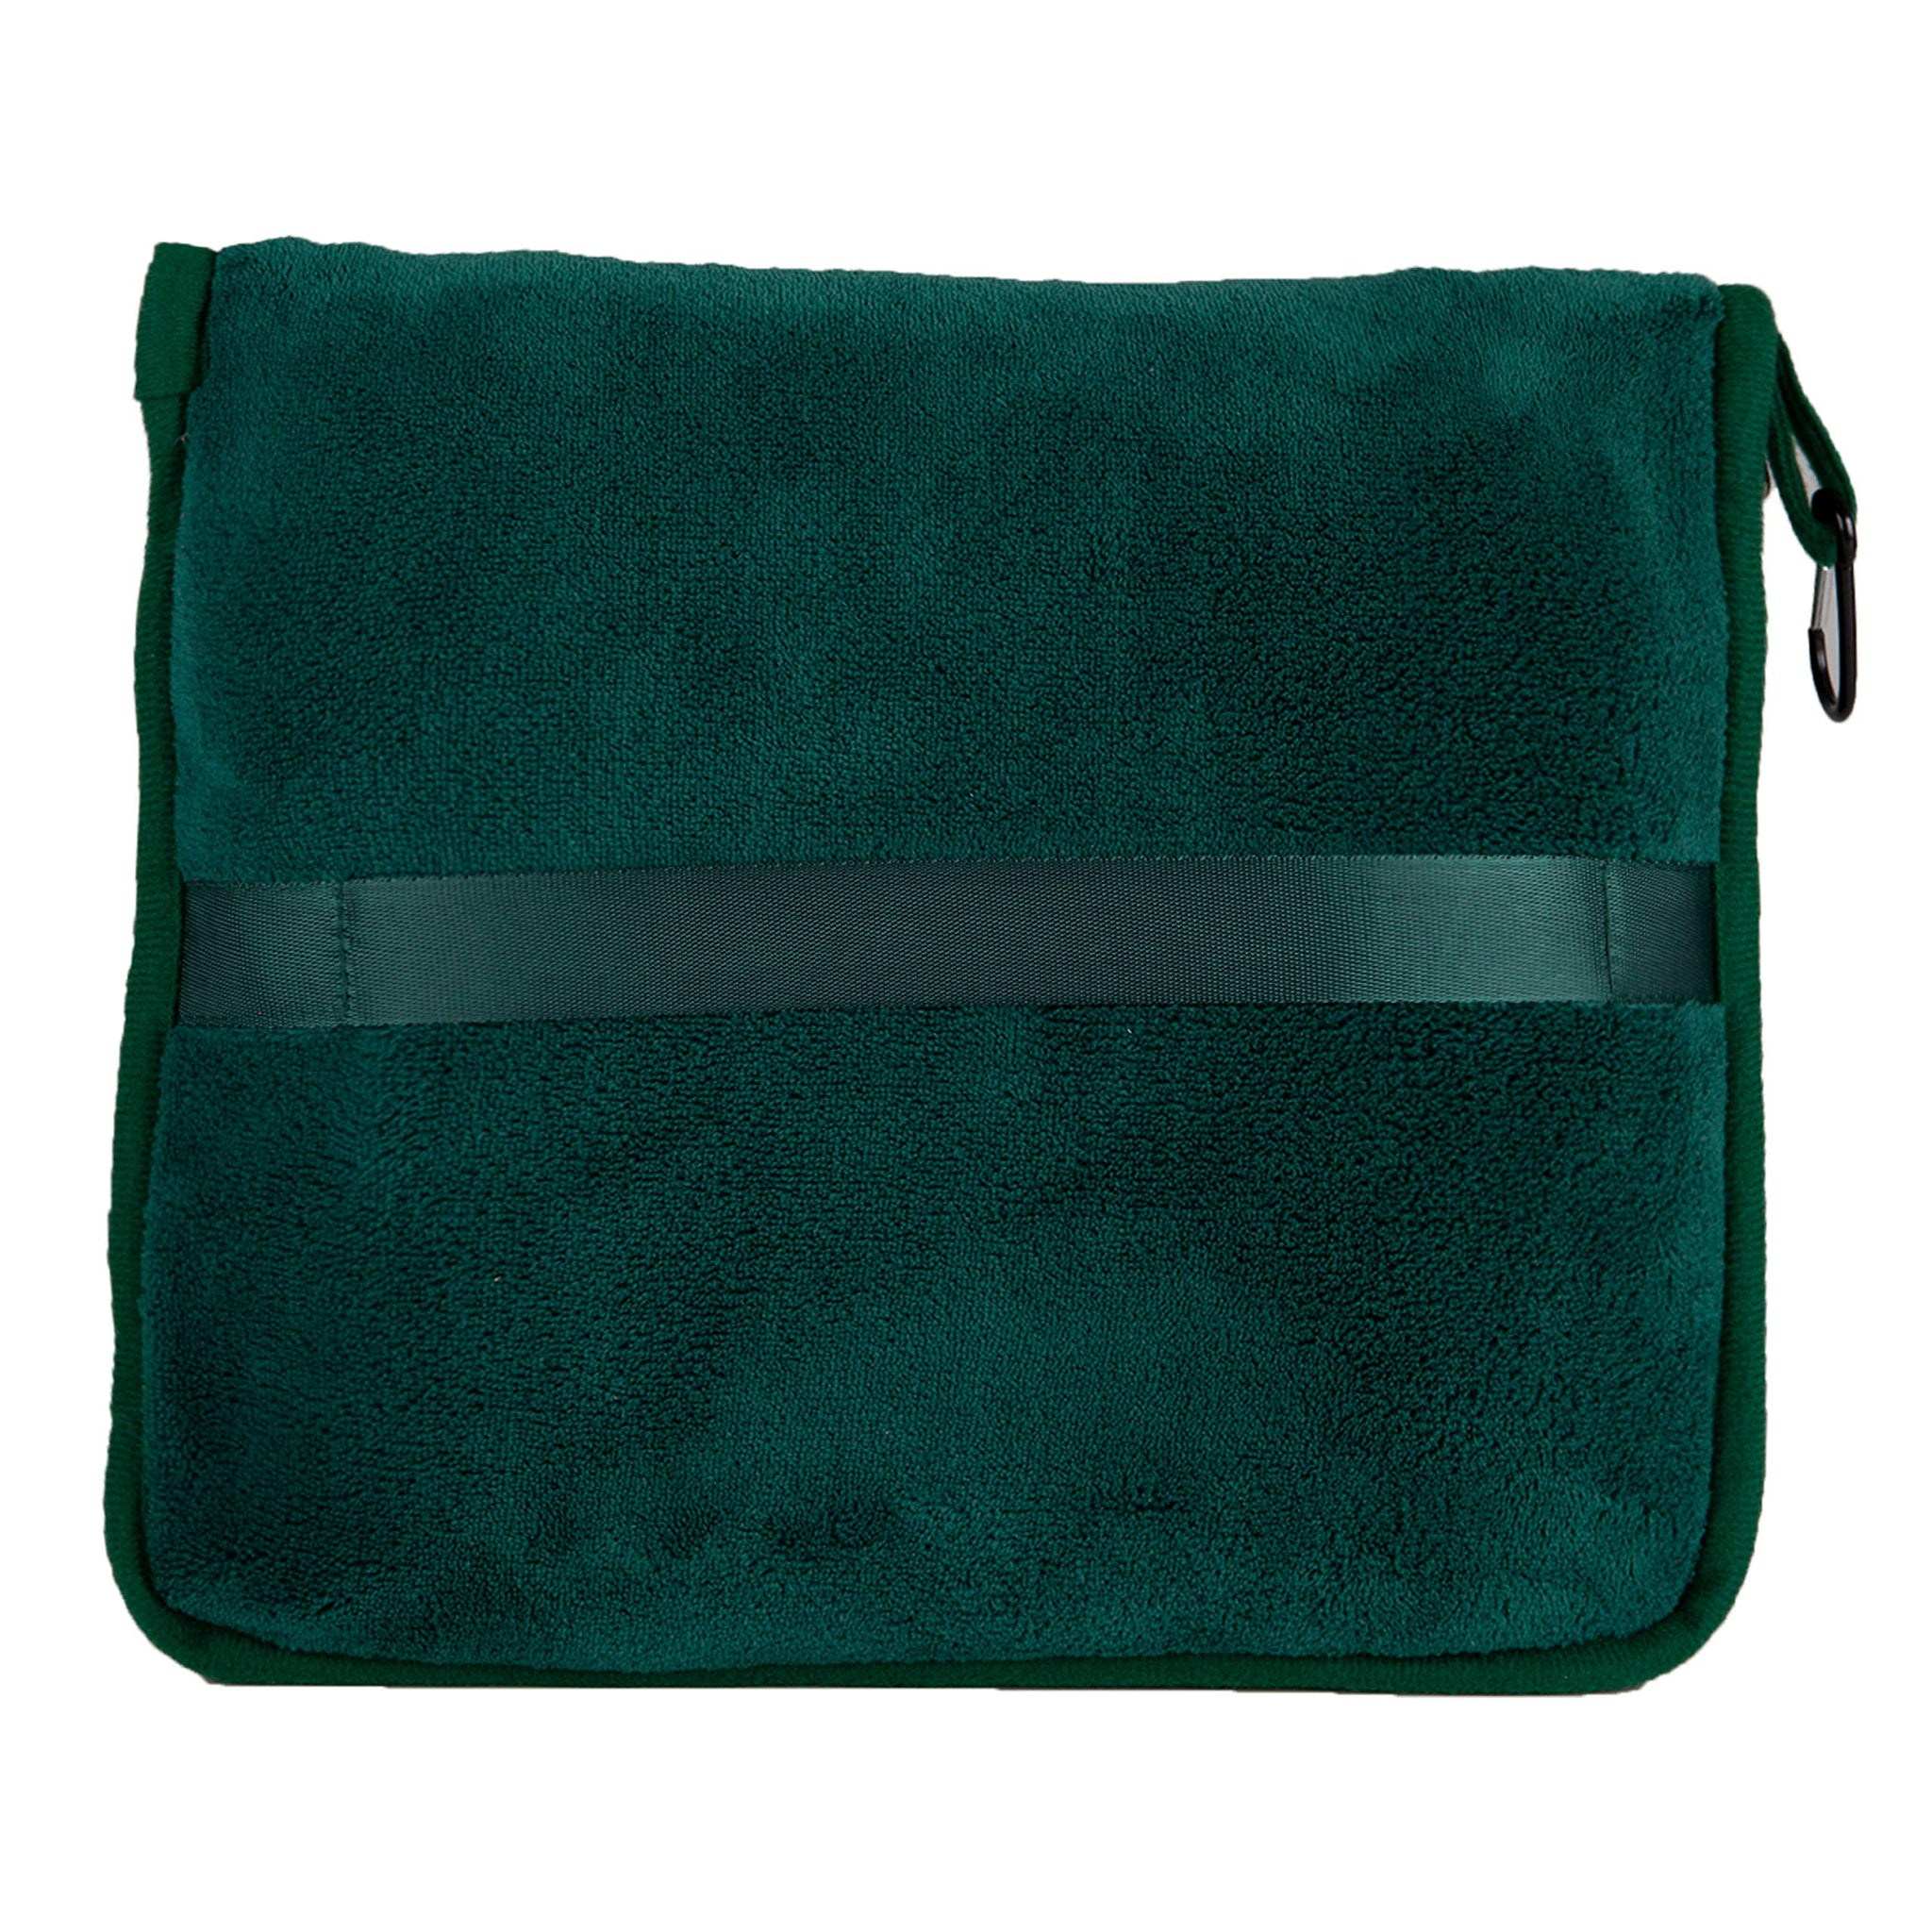 BlueHills Premium Soft Travel Blanket Pillow Airplane Flight Blanket Throw in Soft Bag Pillow case with Hand Luggage Belt & Backpack Clip Compact Pack Large Blanket for Travel Green (Dark Green T010)